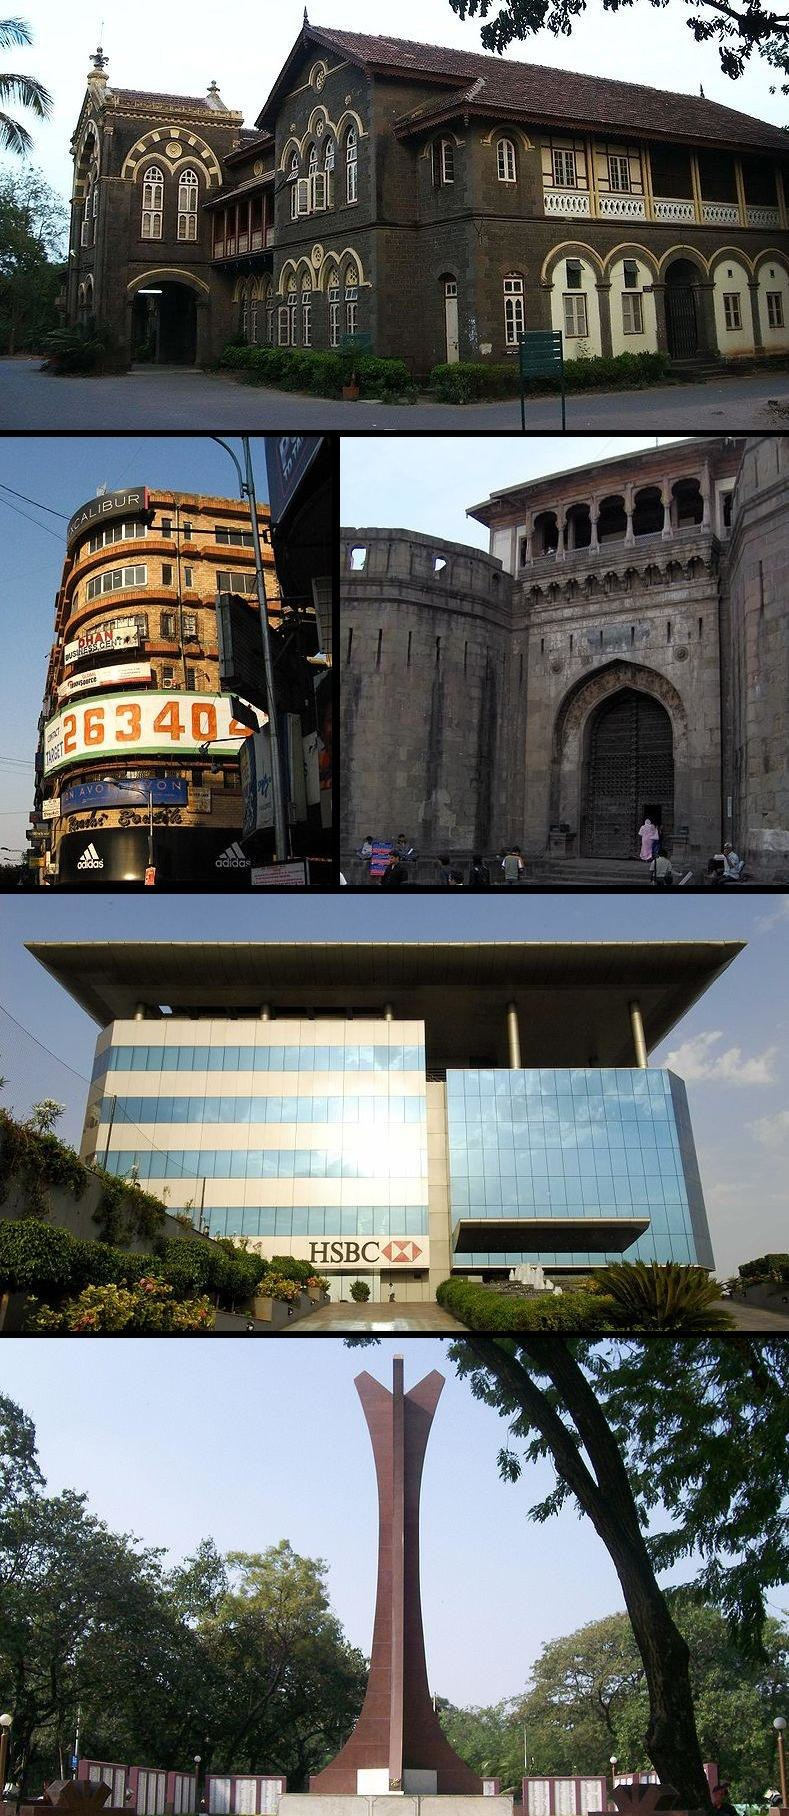 From top: Fergusson College, Mahatma Gandhi Road (left), Shaniwarwada (right), the HSBC Global Technology India Headquarters, and the National War Memorial Southern Command